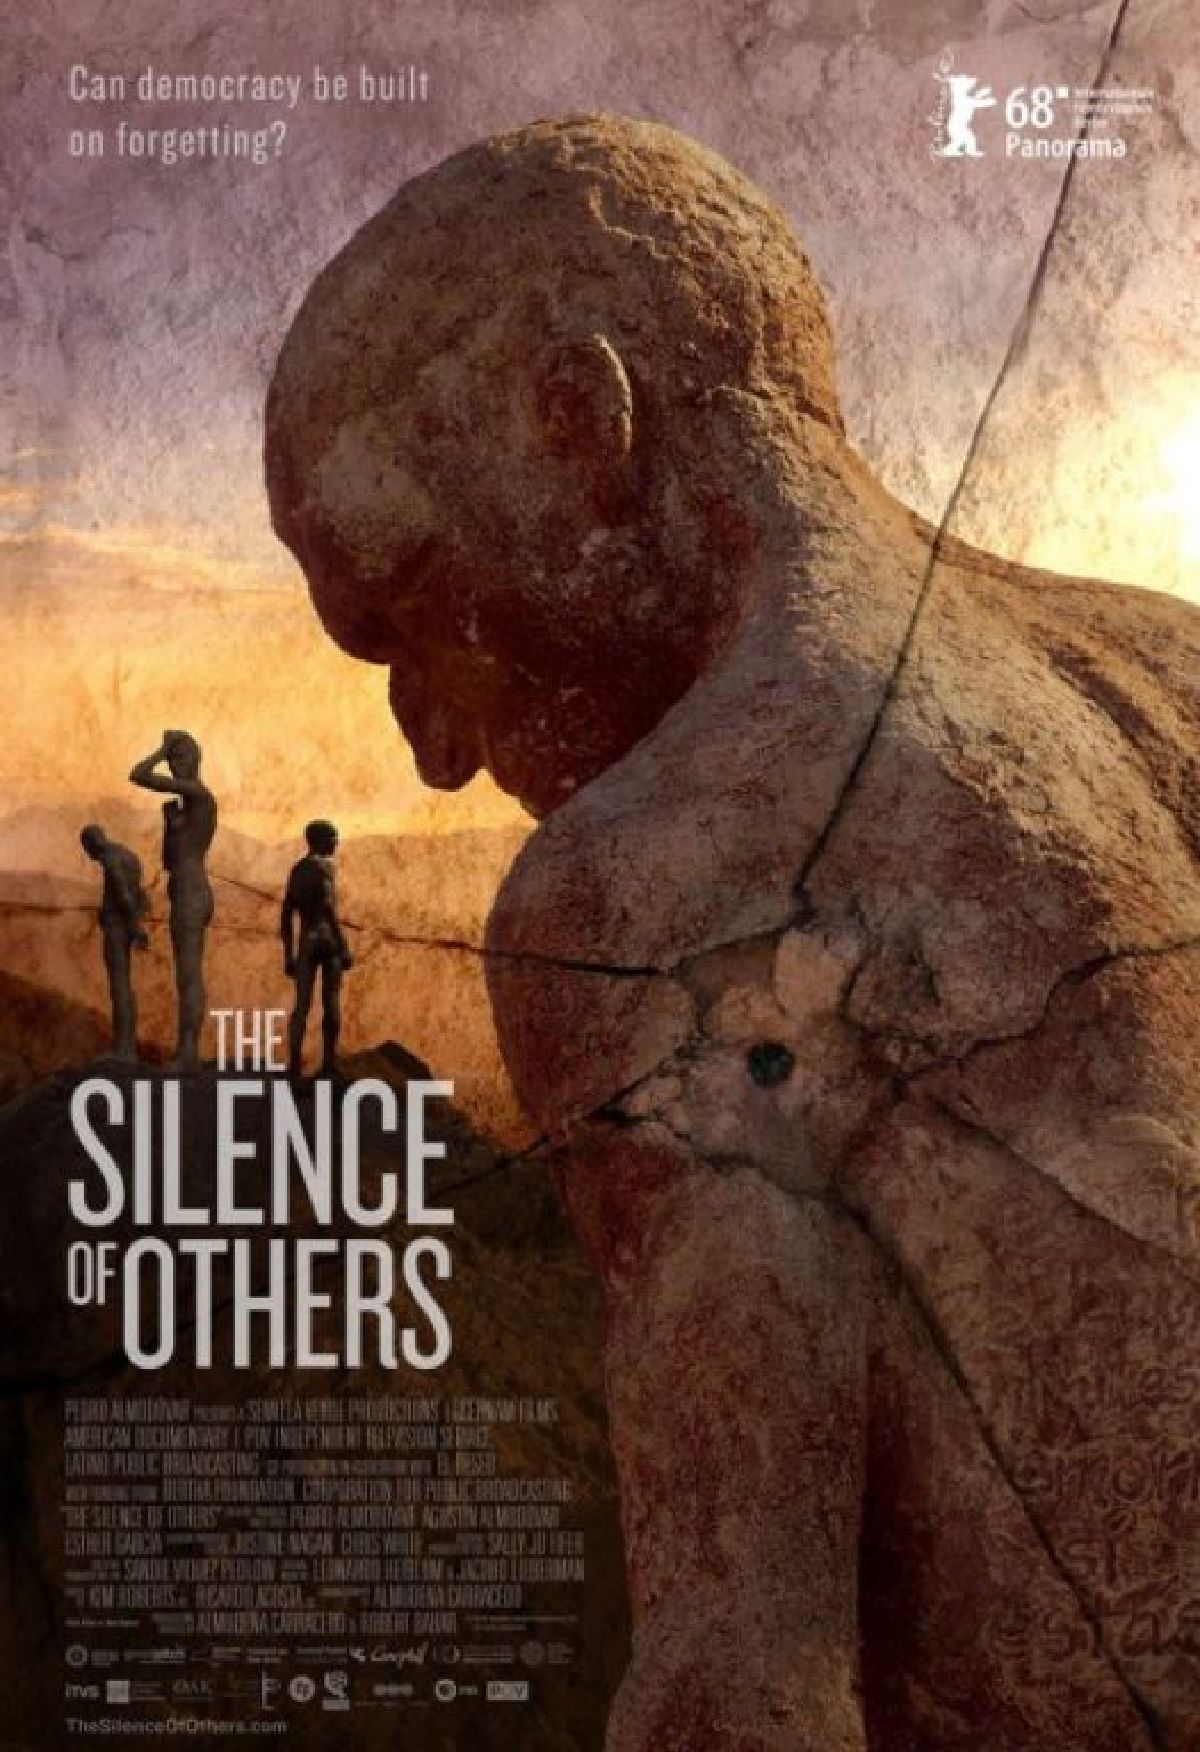 'The Silence Of Others' movie poster